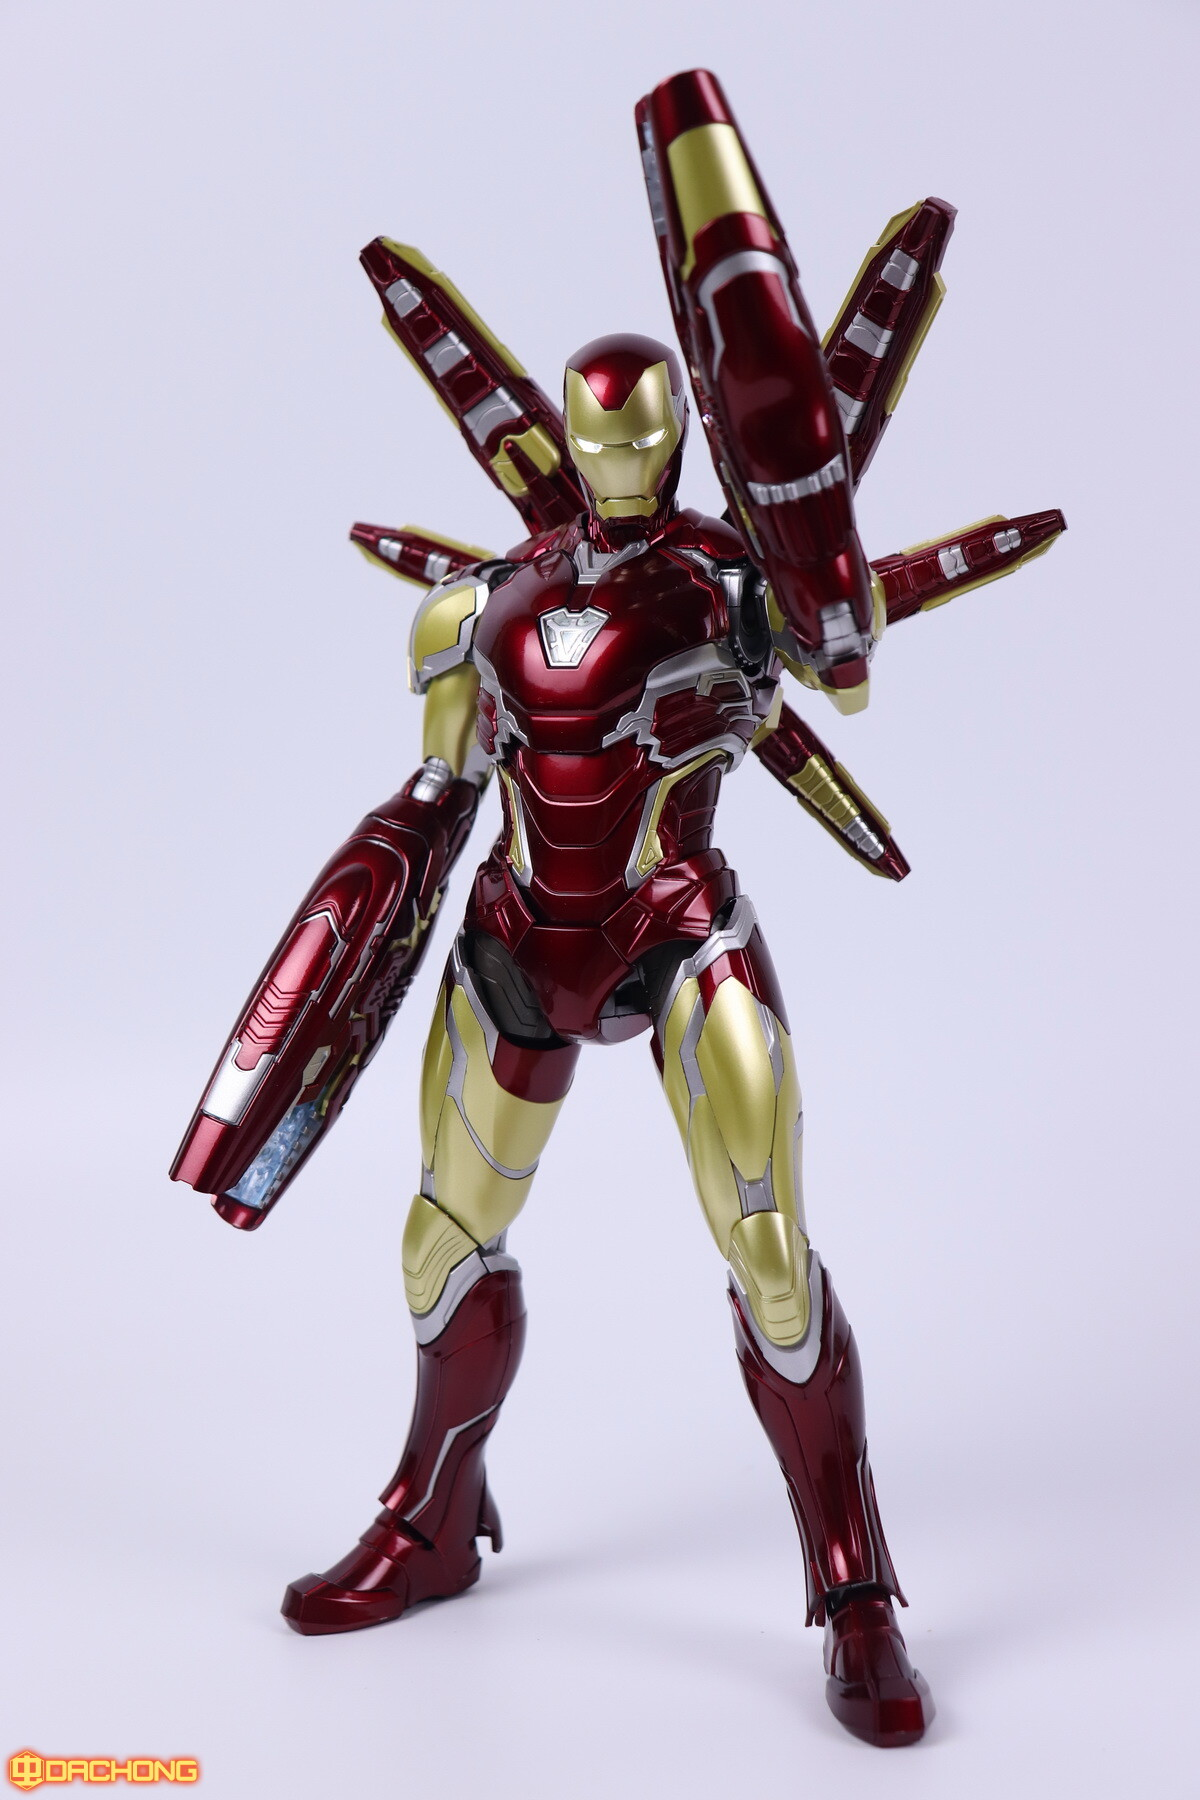 S498_2_e_model_ironman_mk85_dx_119.jpg